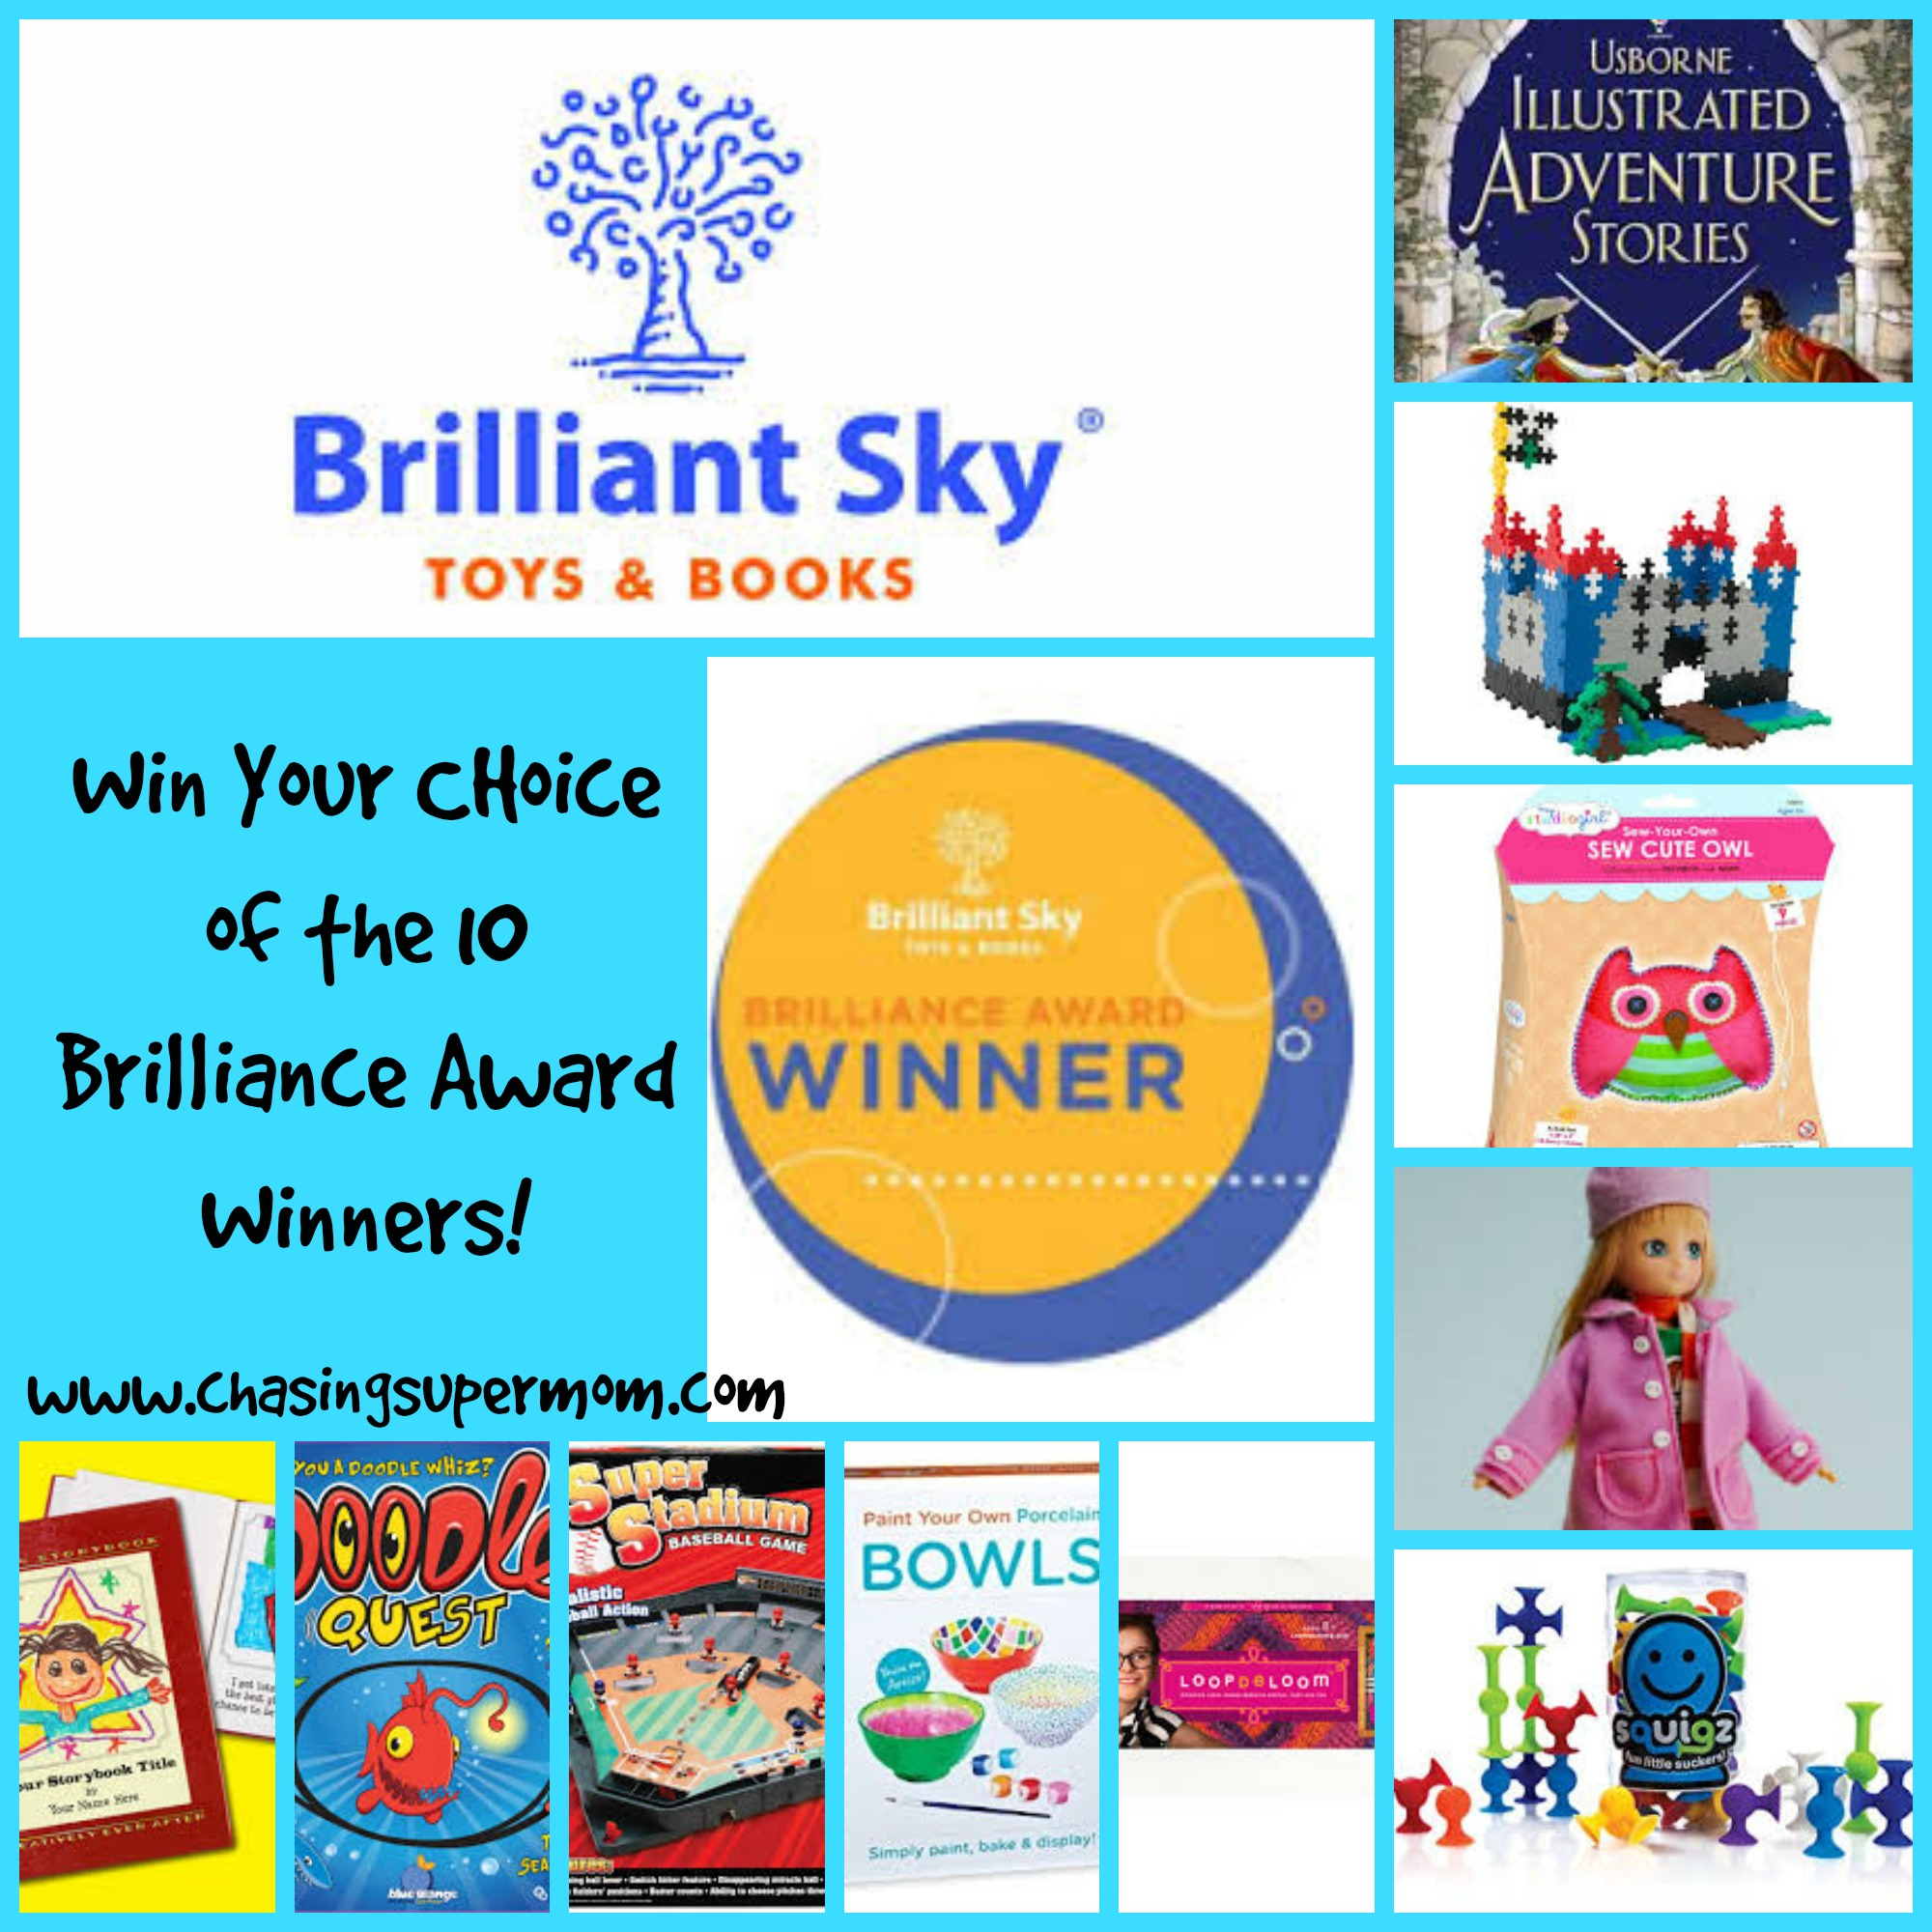 Brilliant Sky Toys & Books – Brilliance Award Winners Toy Giveaway